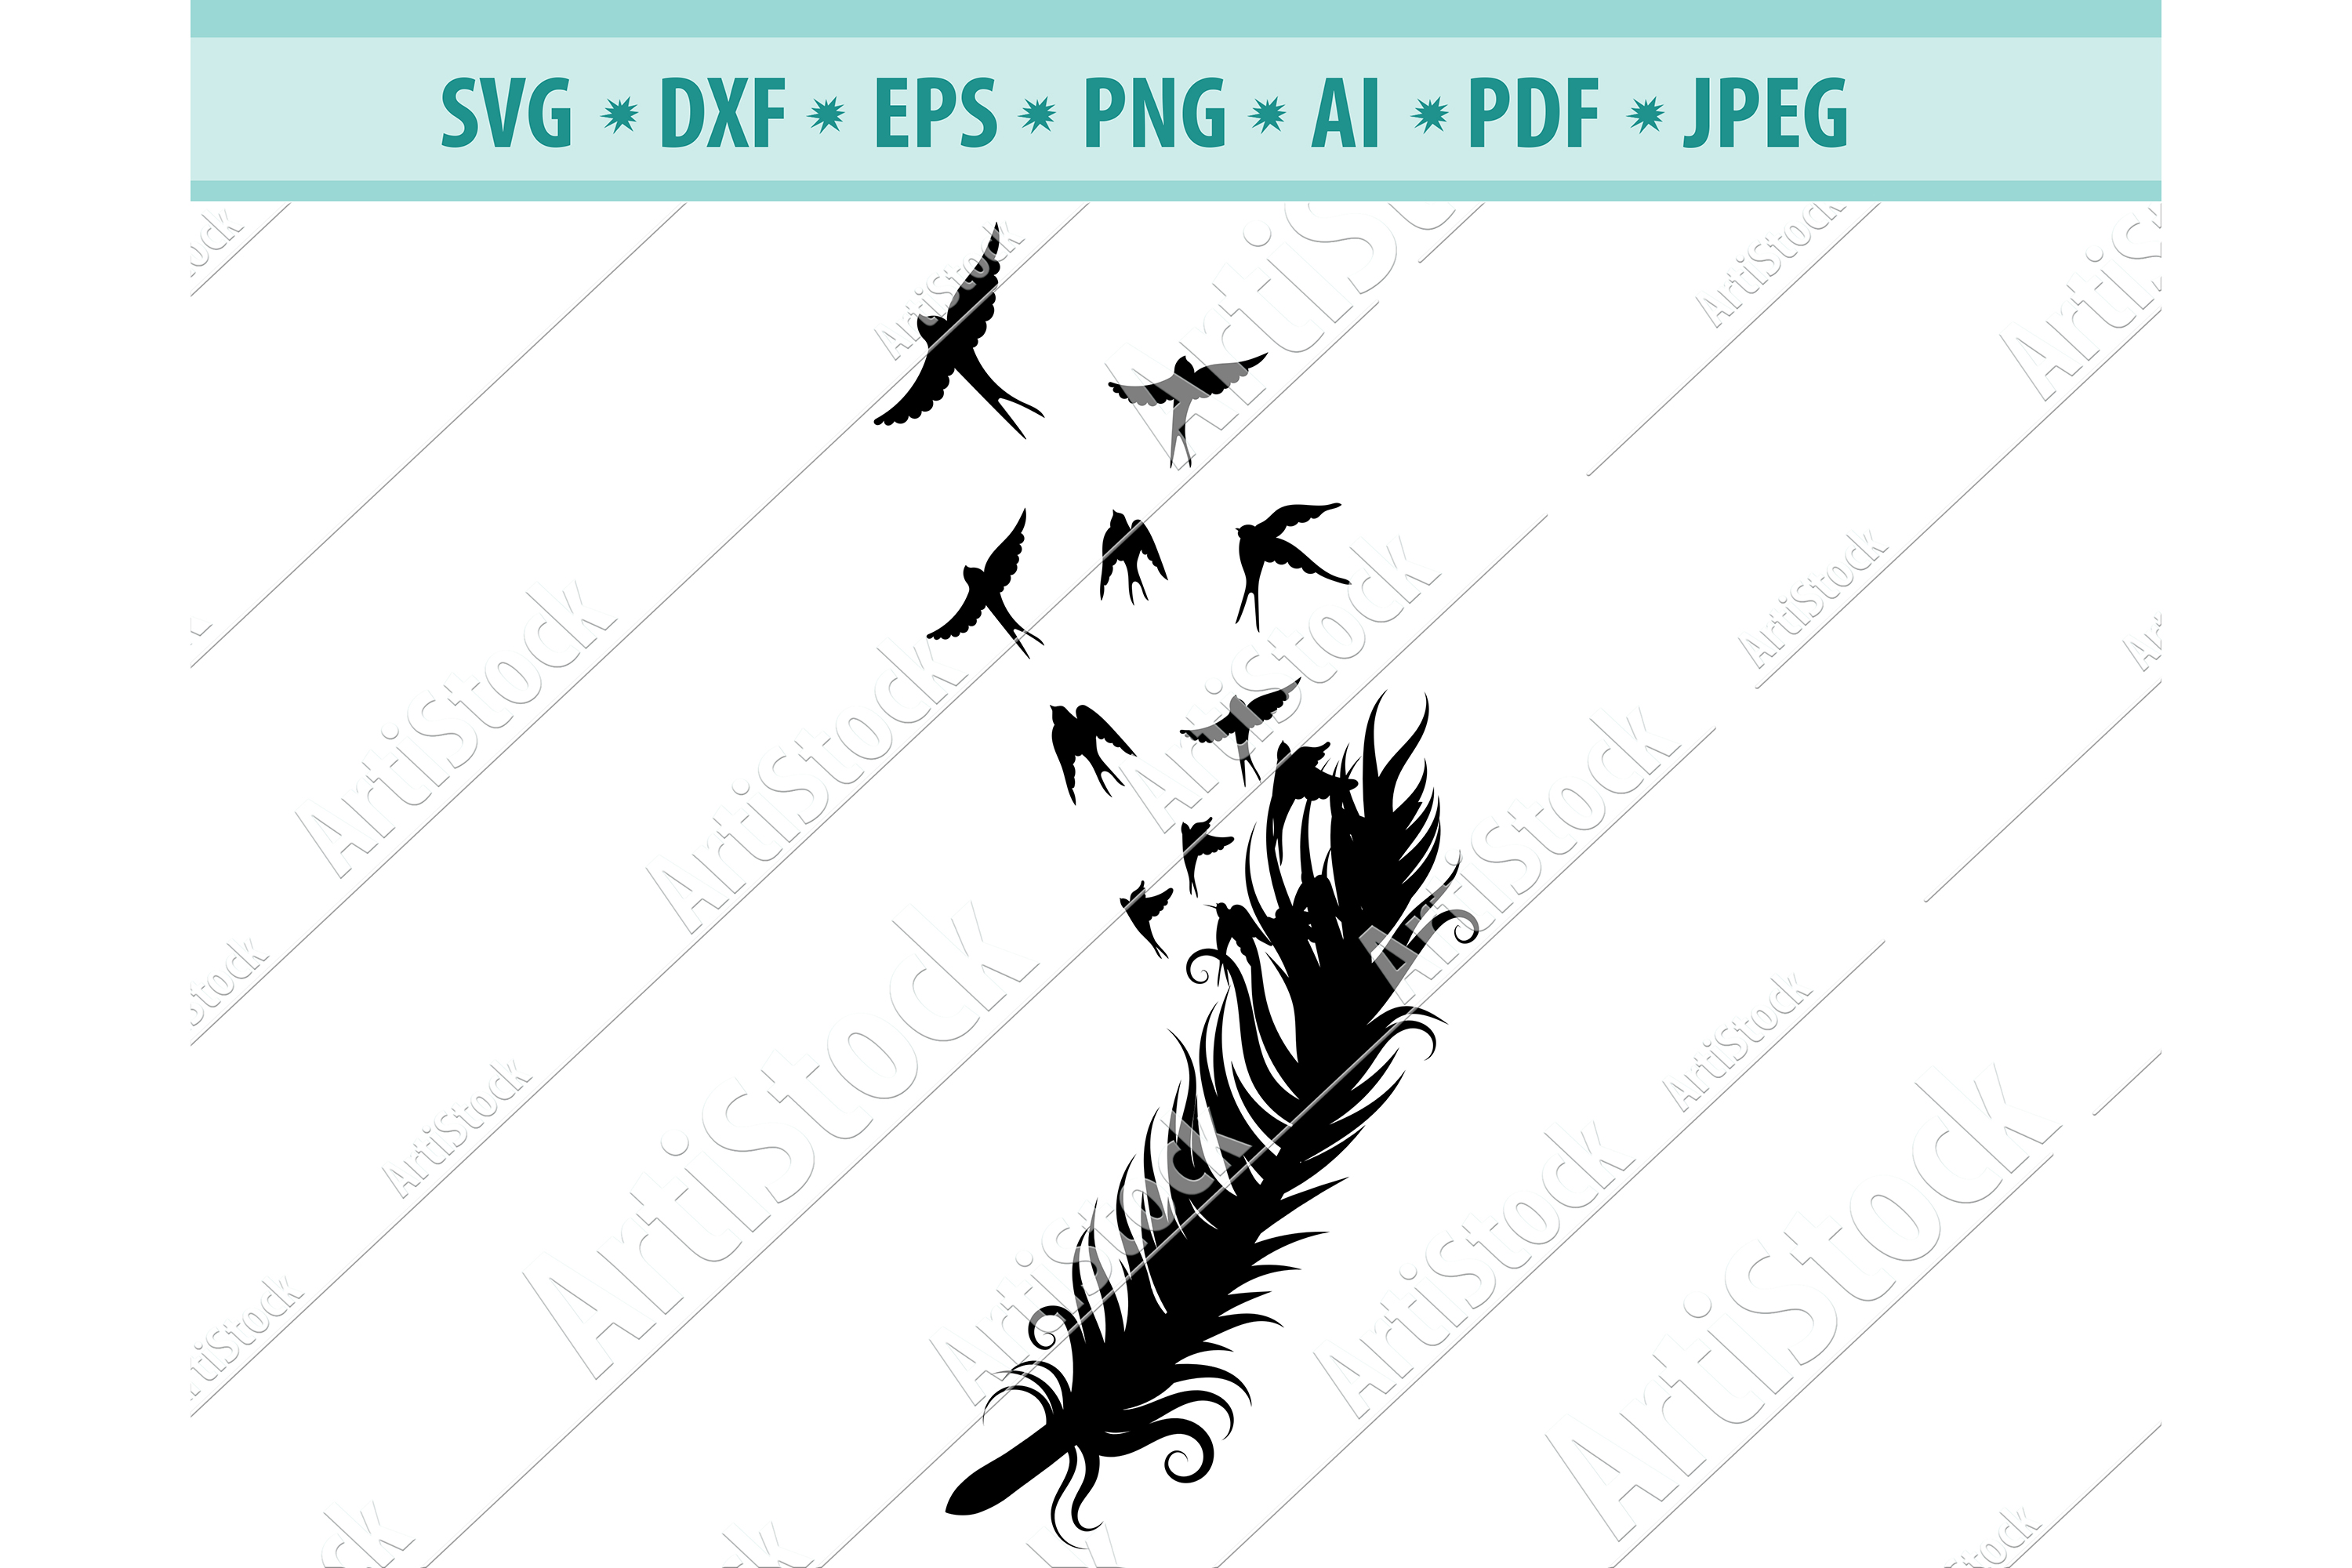 Feather to Birds Svg, Dove feathers Svg, Gift Dxf, Png, Eps example image 1